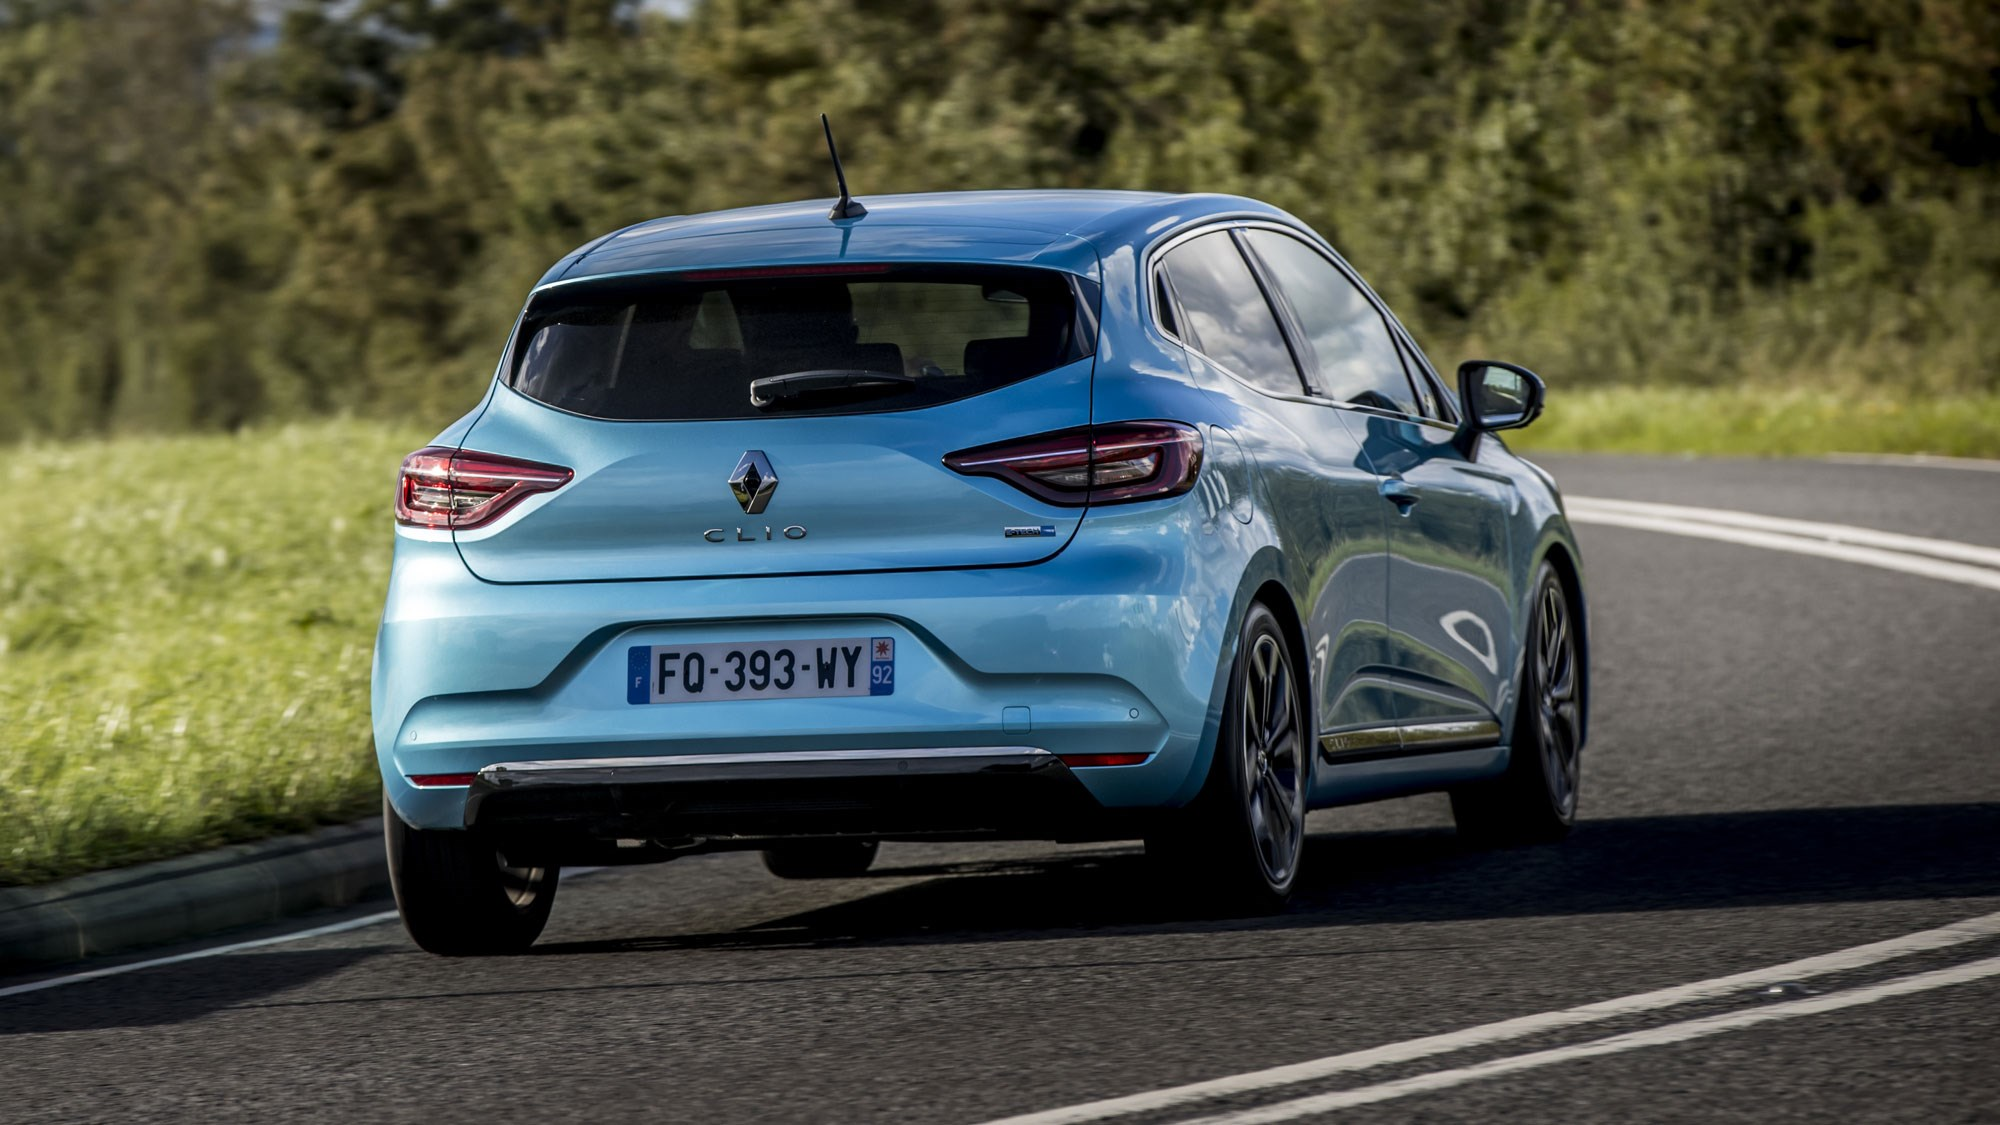 Renault Clio E-Tech hybrid review, 2020, rear view, blue, driving round corner